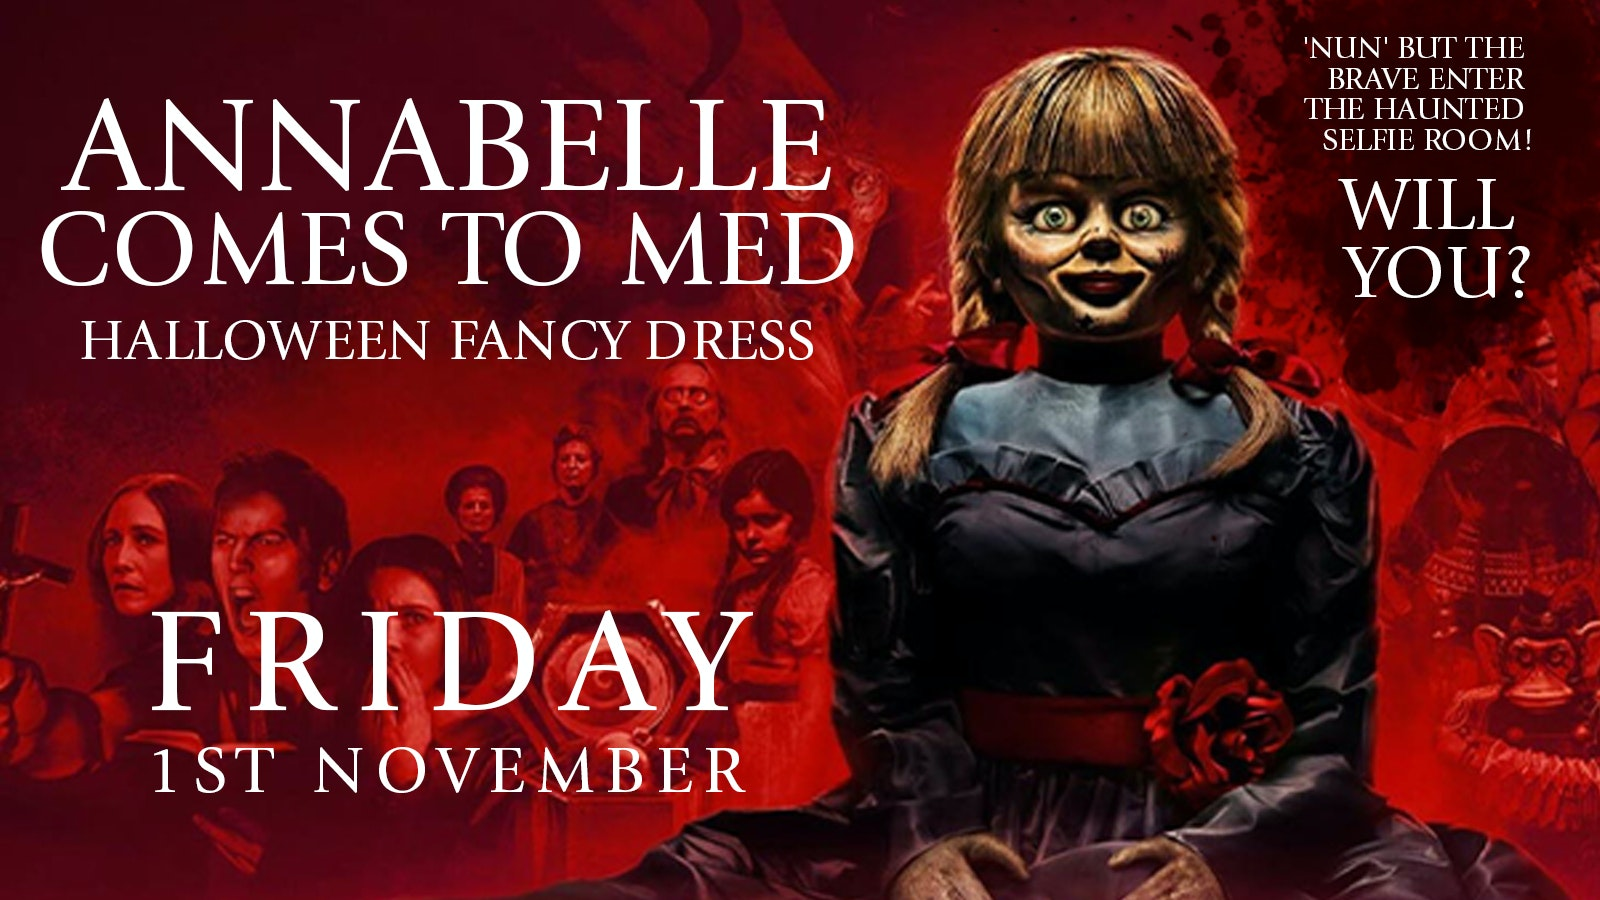 MEDICATION -ANNABELLE COMES TO MED